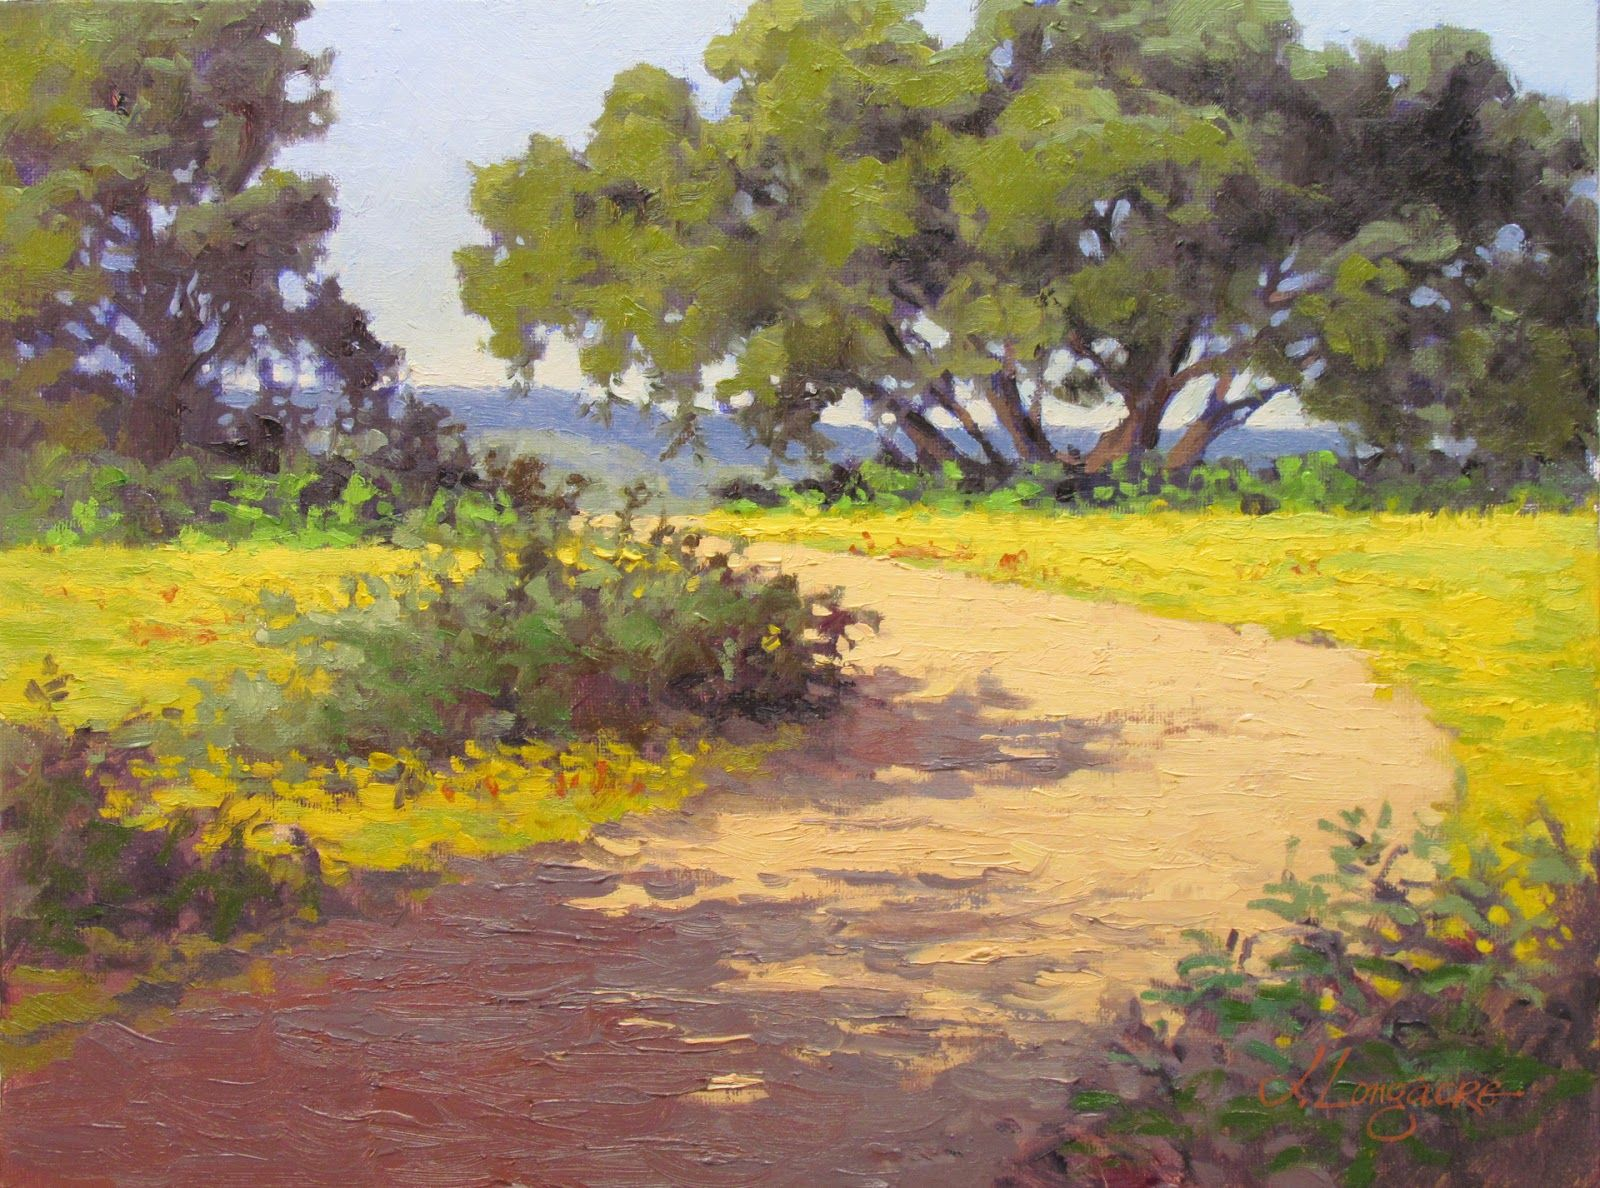 Watercolor artists in texas - Landscape Artists International After The Bluebonnets Plein Air And Studio Landscape Painting